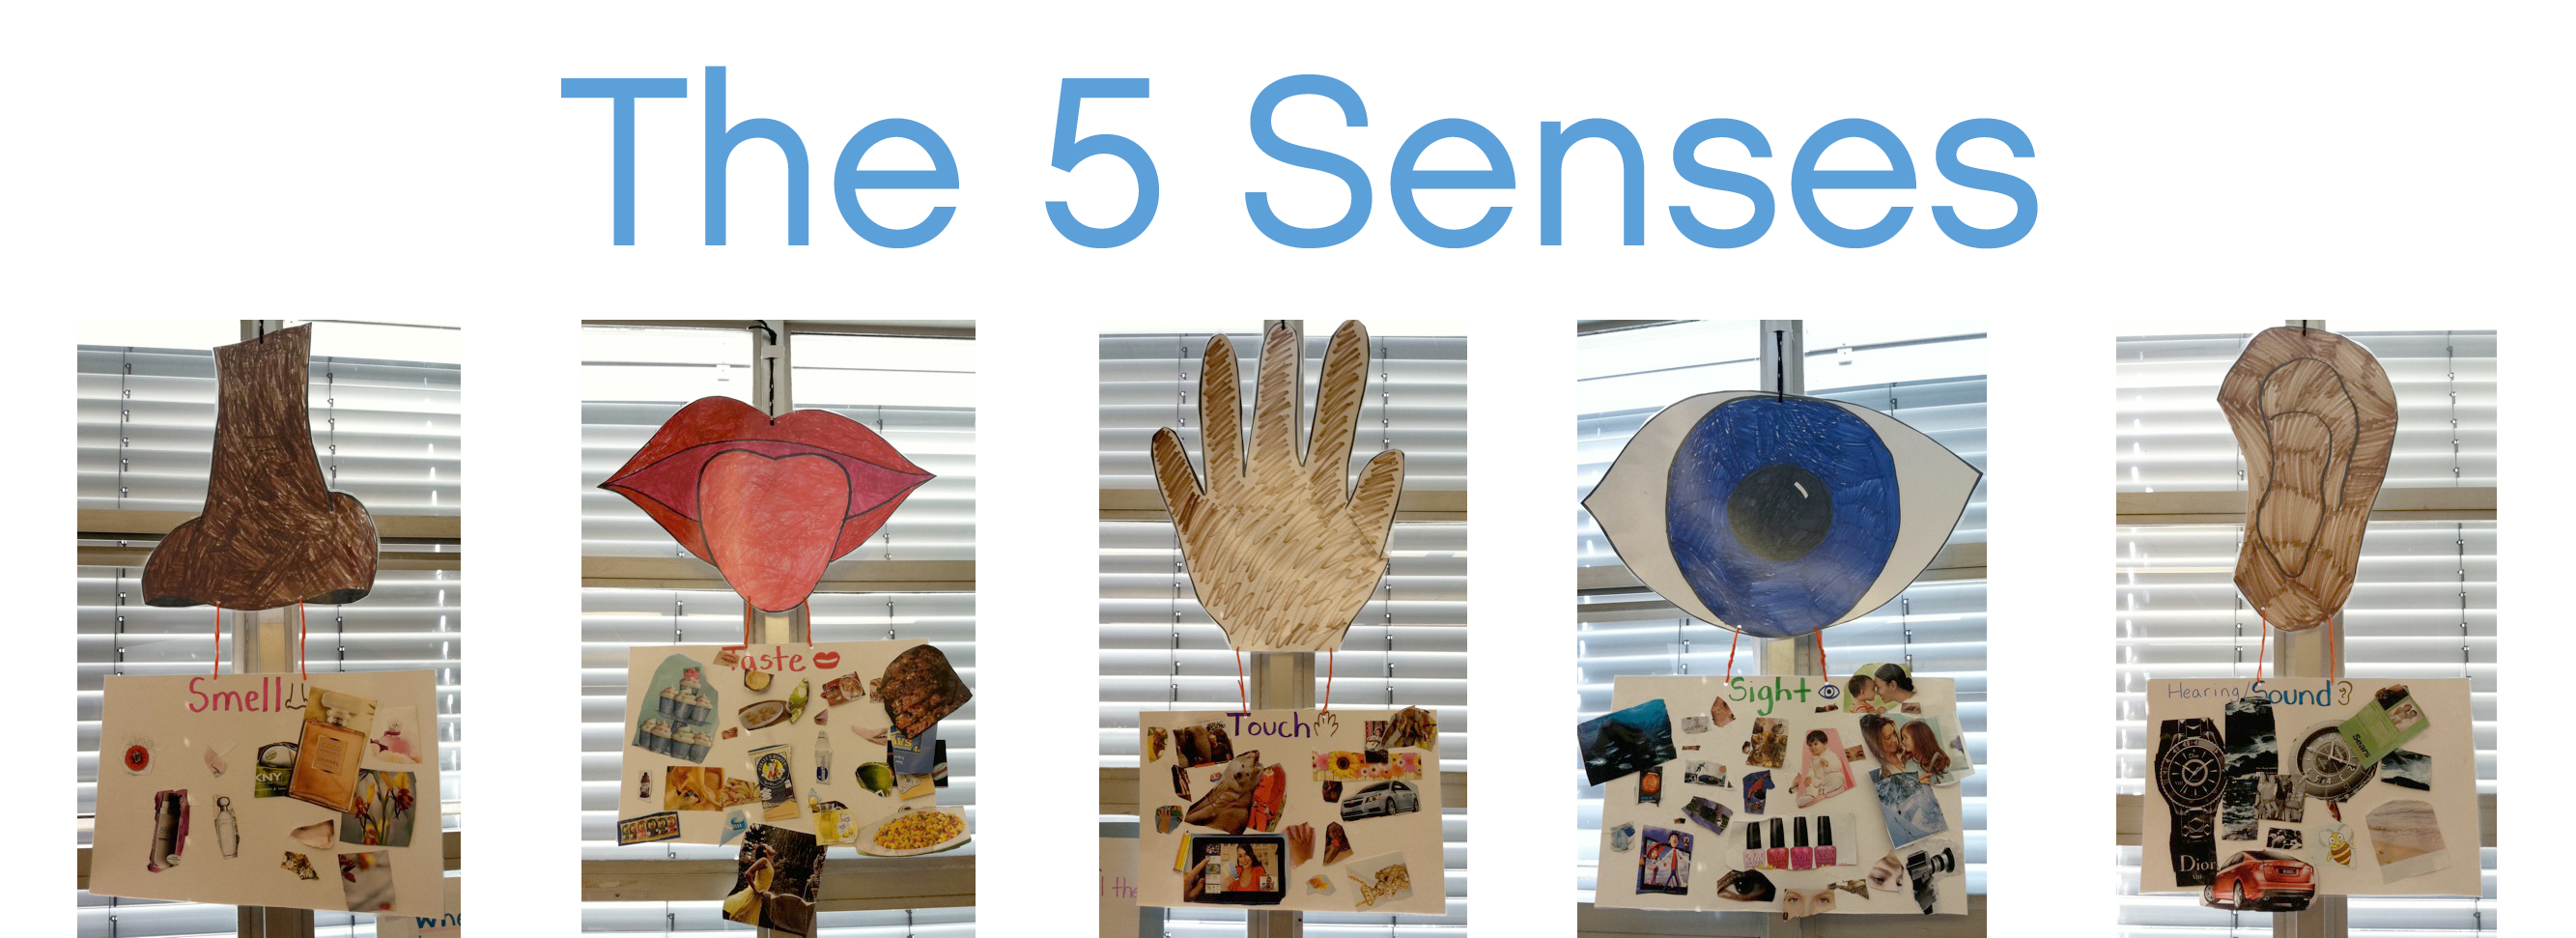 Five Sense Worksheet New 327 Five Senses Preschool Arts